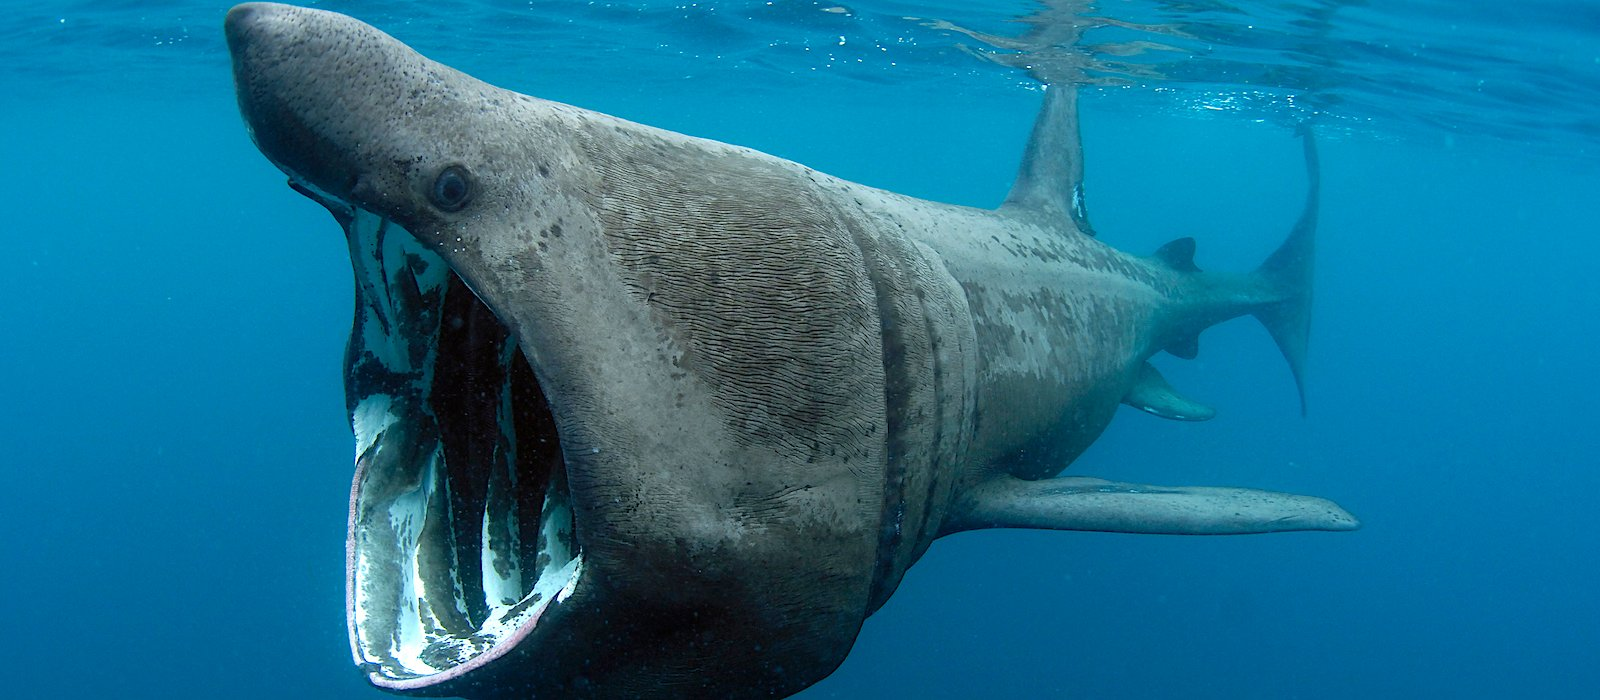 Basking Shark Appeal